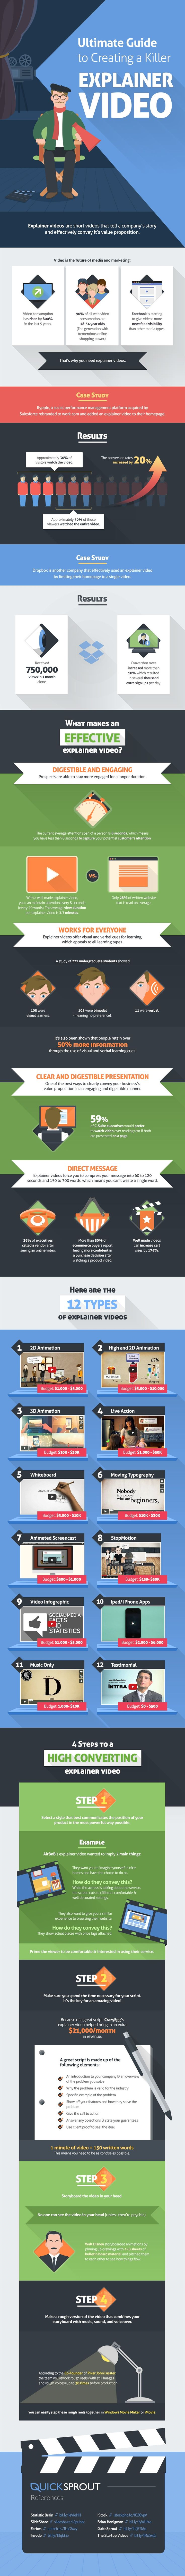 #Video is the Future of #Media and #Marketing [ #Infographic ]